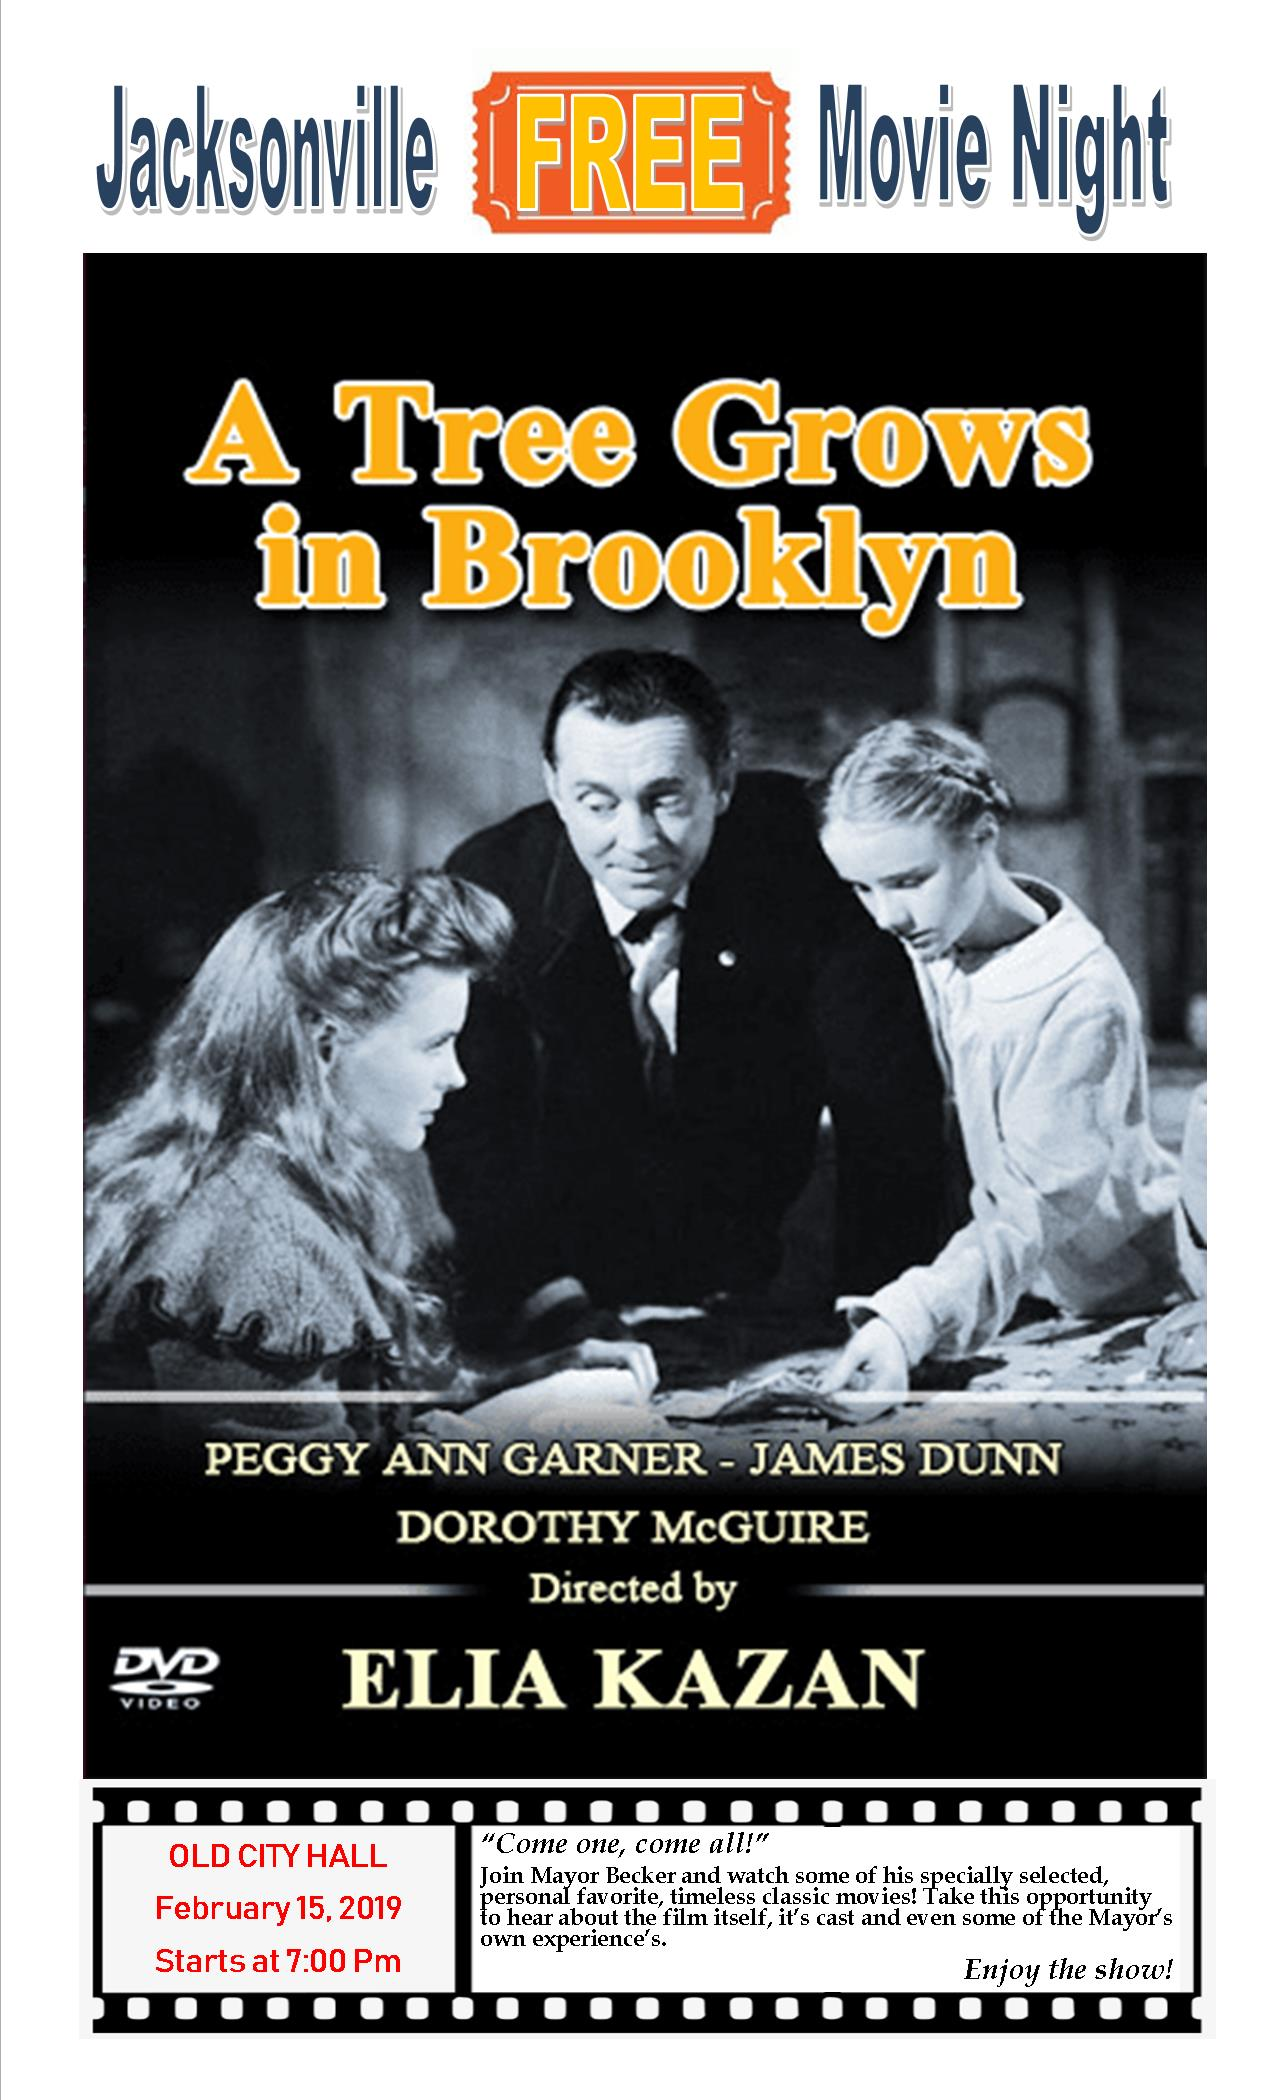 MOVIE a tree grows in brooklyn poster